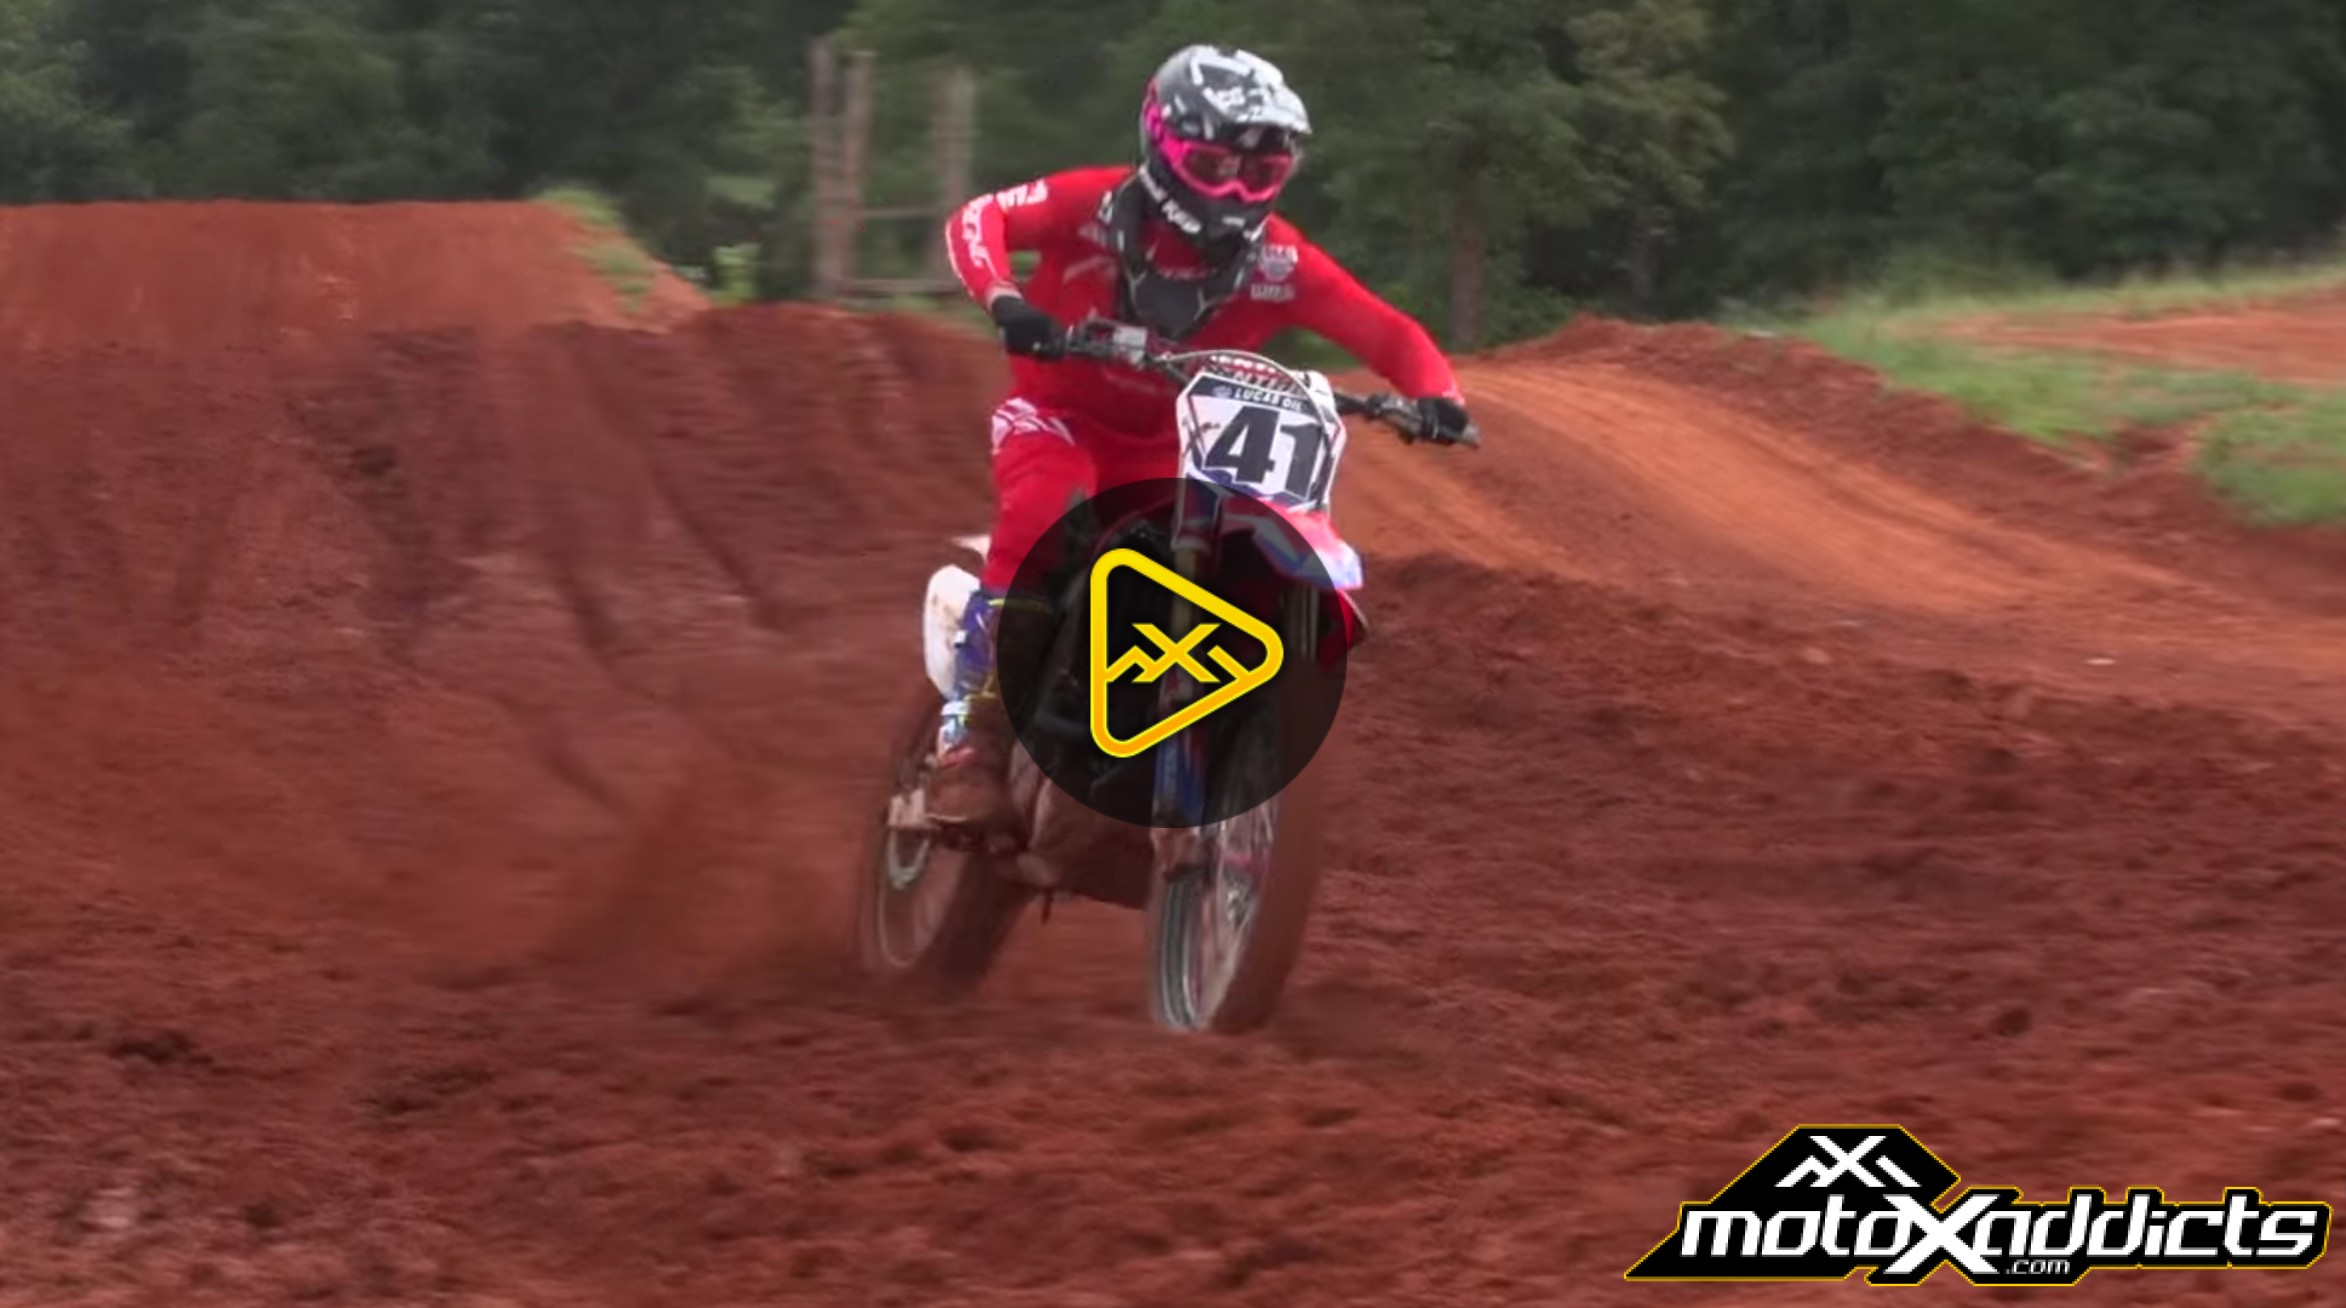 2016 Reynard Training Facility – Bogle, Canard, Forkner and More